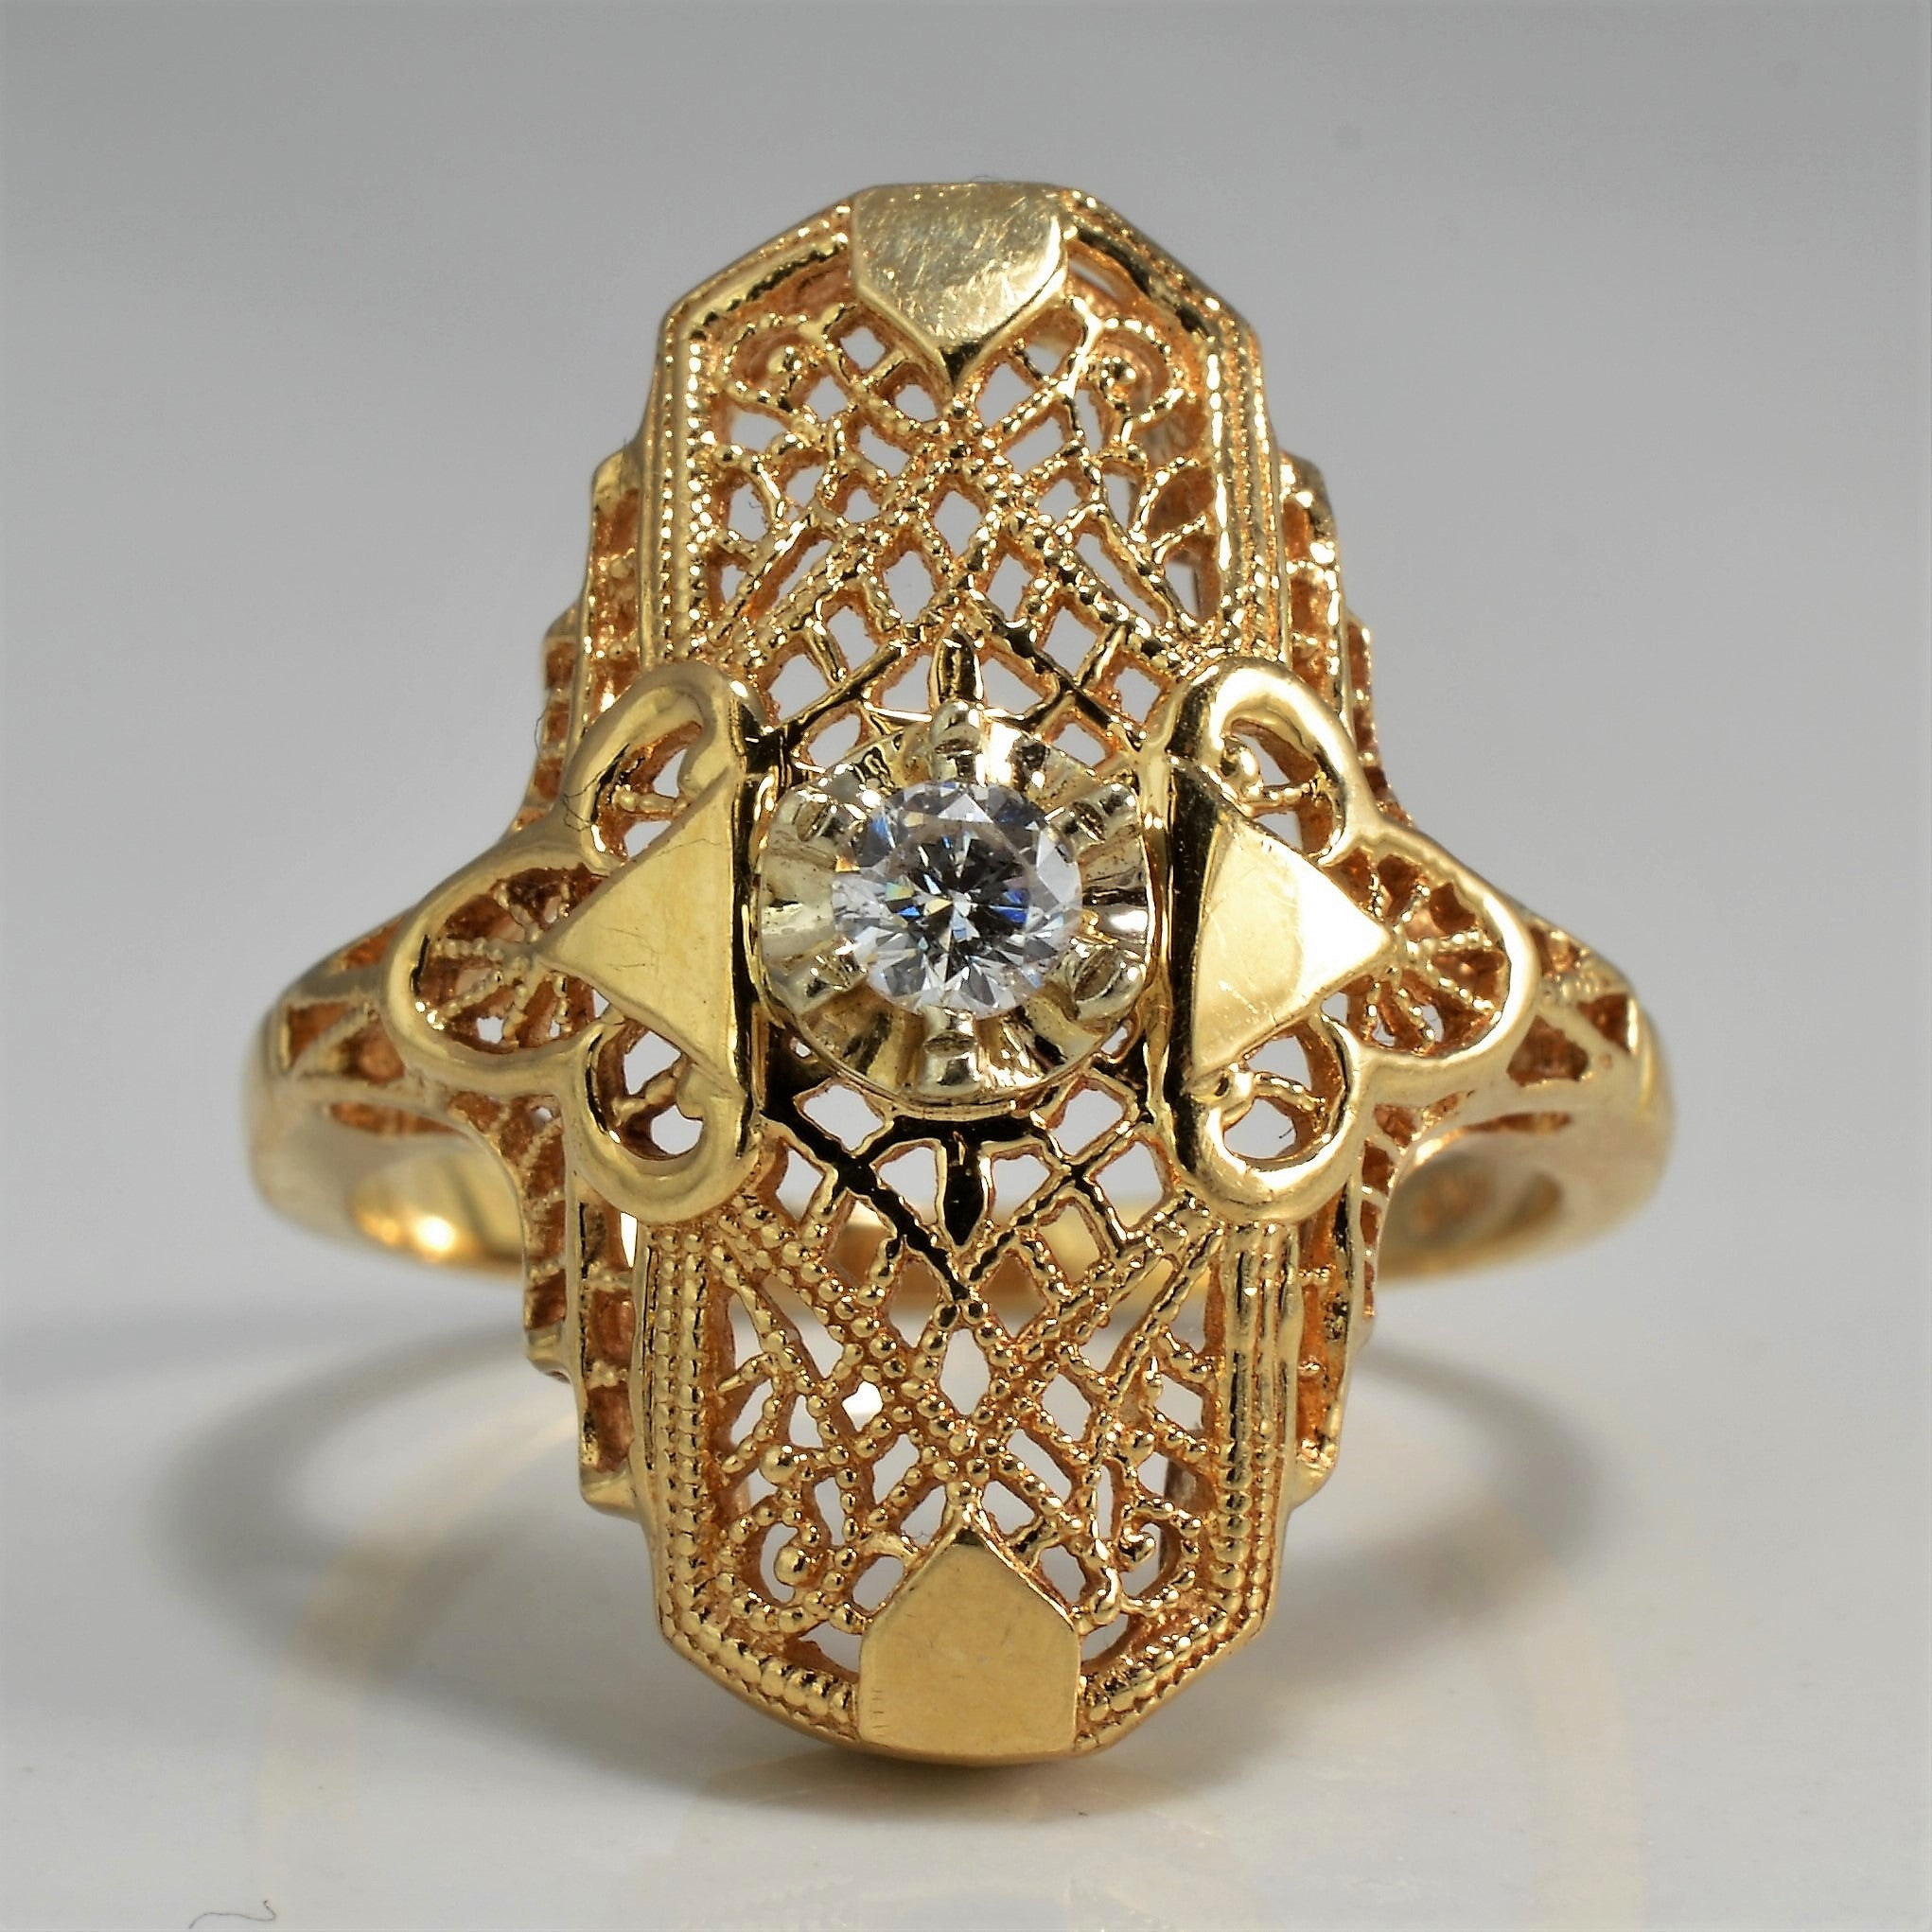 Ornate Filigree Diamond Ring | 0.10 ct, SZ 6.75 |